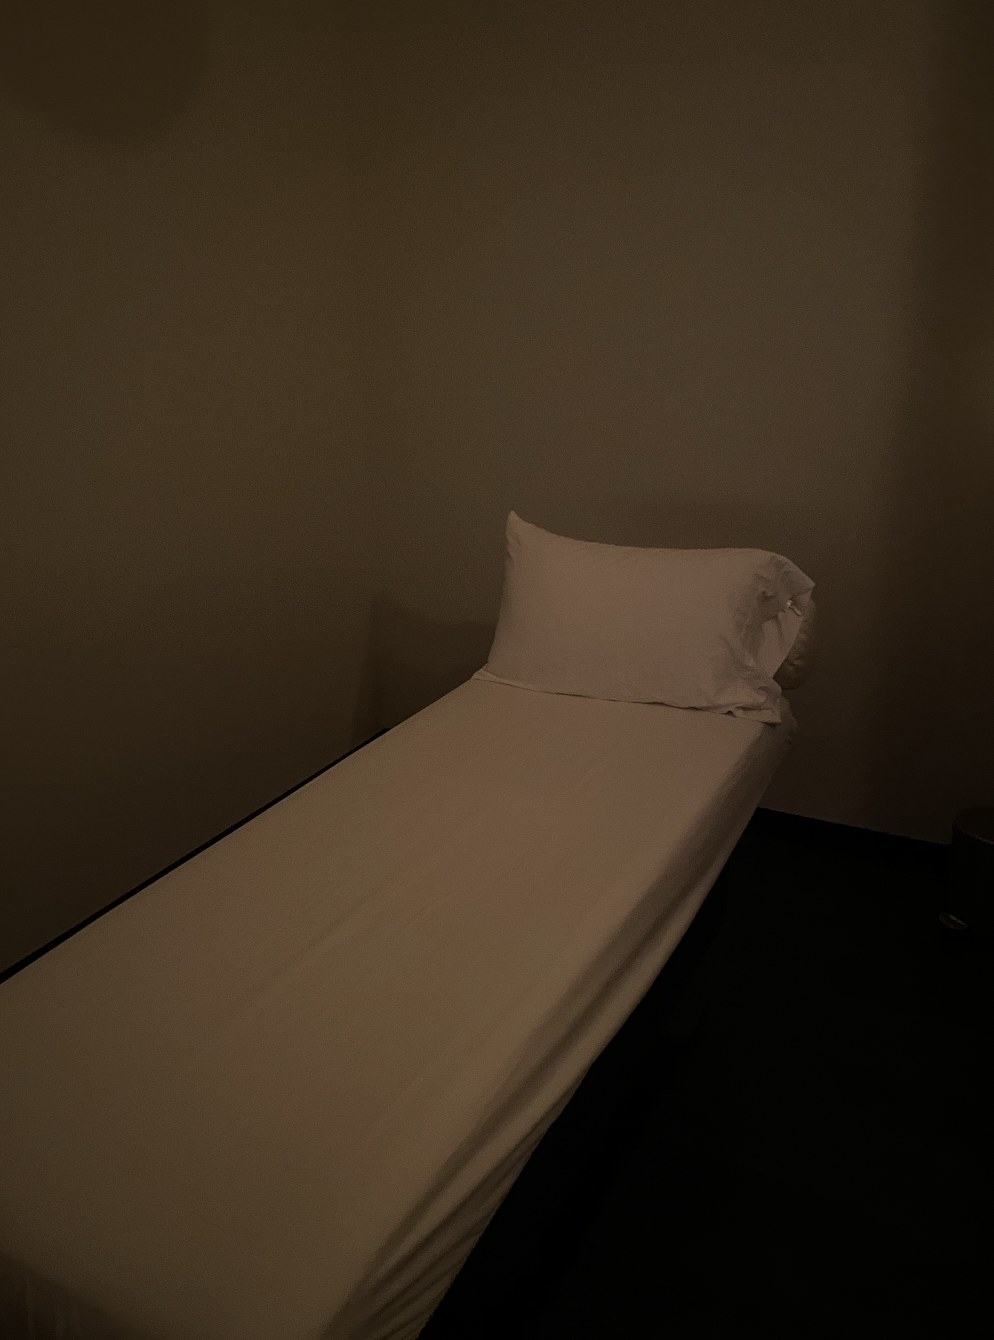 An image of the acupuncture bed